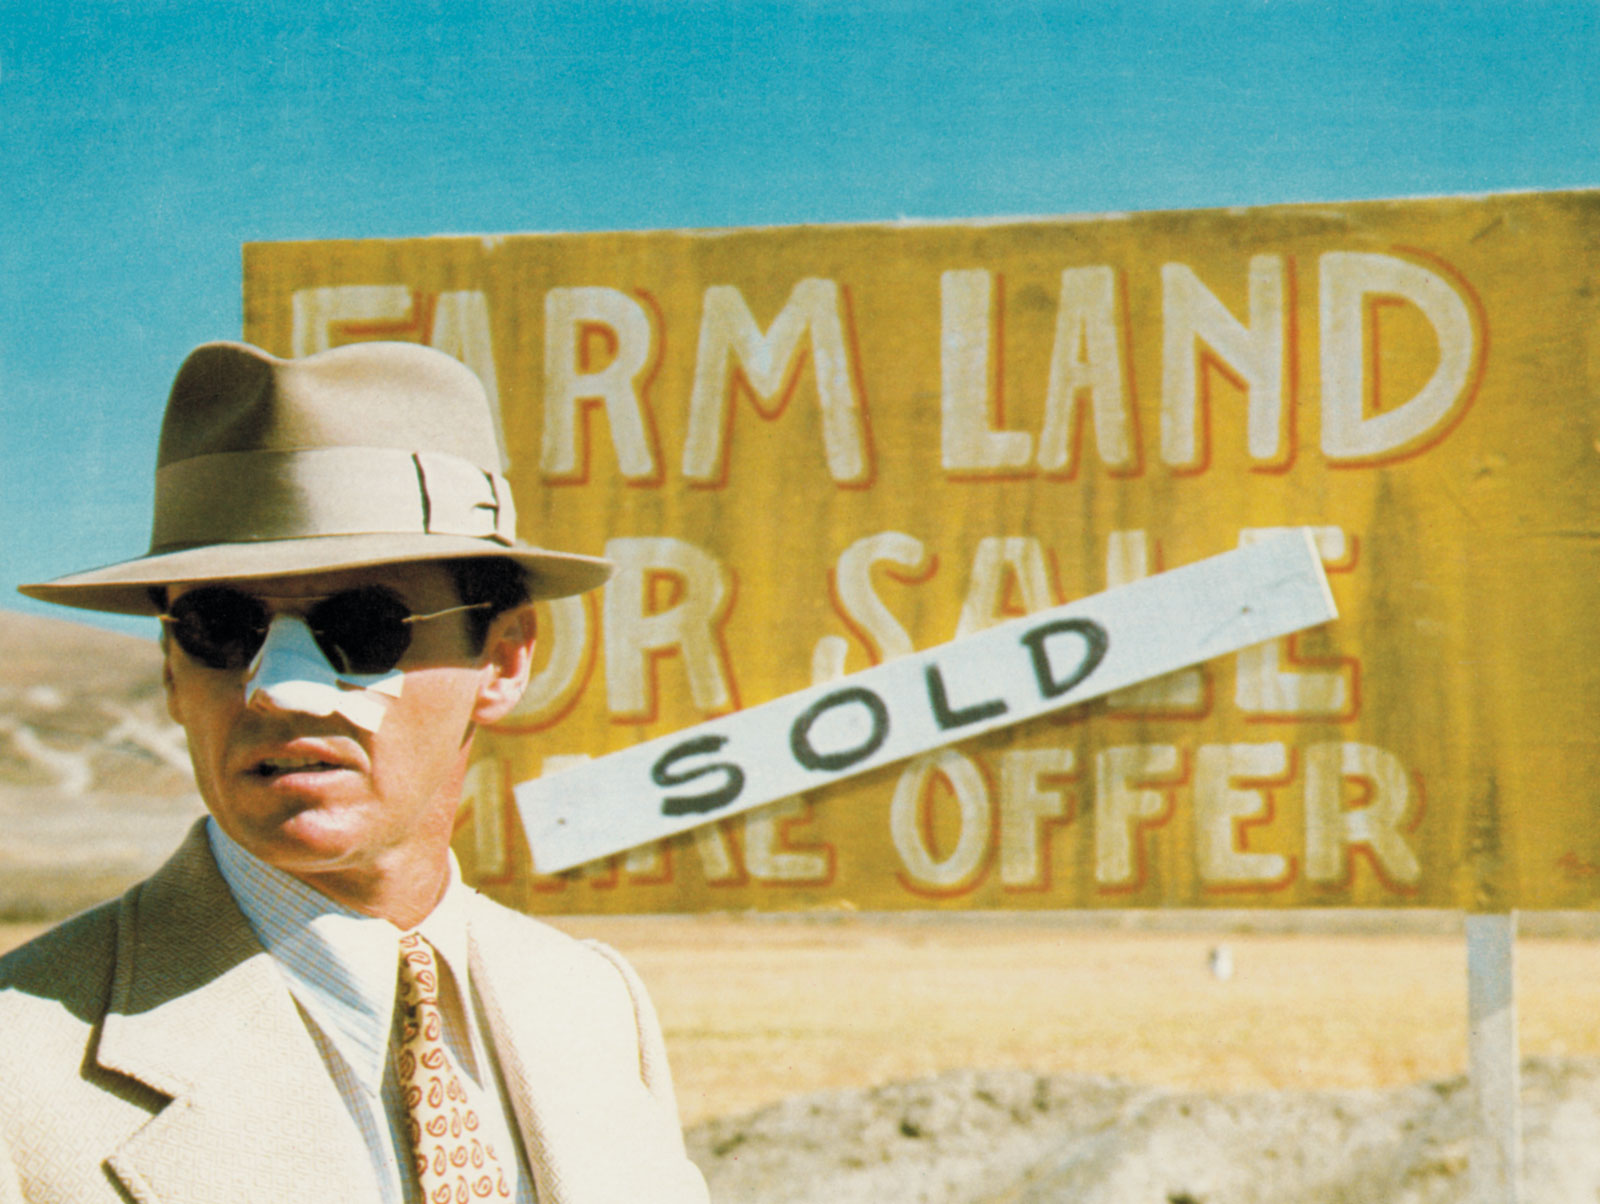 an analysis of chinatown a film by roman polanski Roman polanski's hollywood film chinatown, directed in 1974, tells the story of jake gittes,  postcards from chinatown - analysis 1299 words | 6 pages.